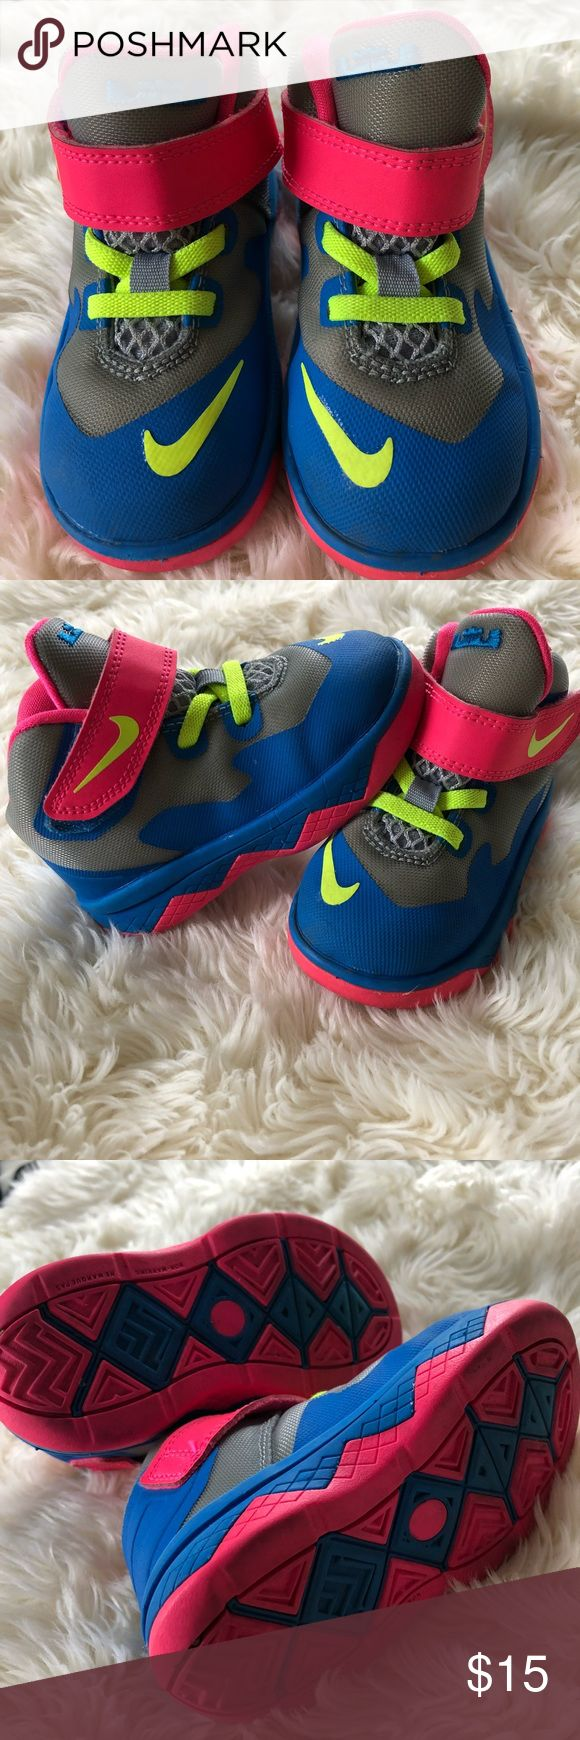 Toddler Nike Shoes Adorable toddler Nike Shoes. Preloved but still in great condition! Size 6c. Nike Shoes Sneakers http://feedproxy.google.com/fashiongo/wyRV